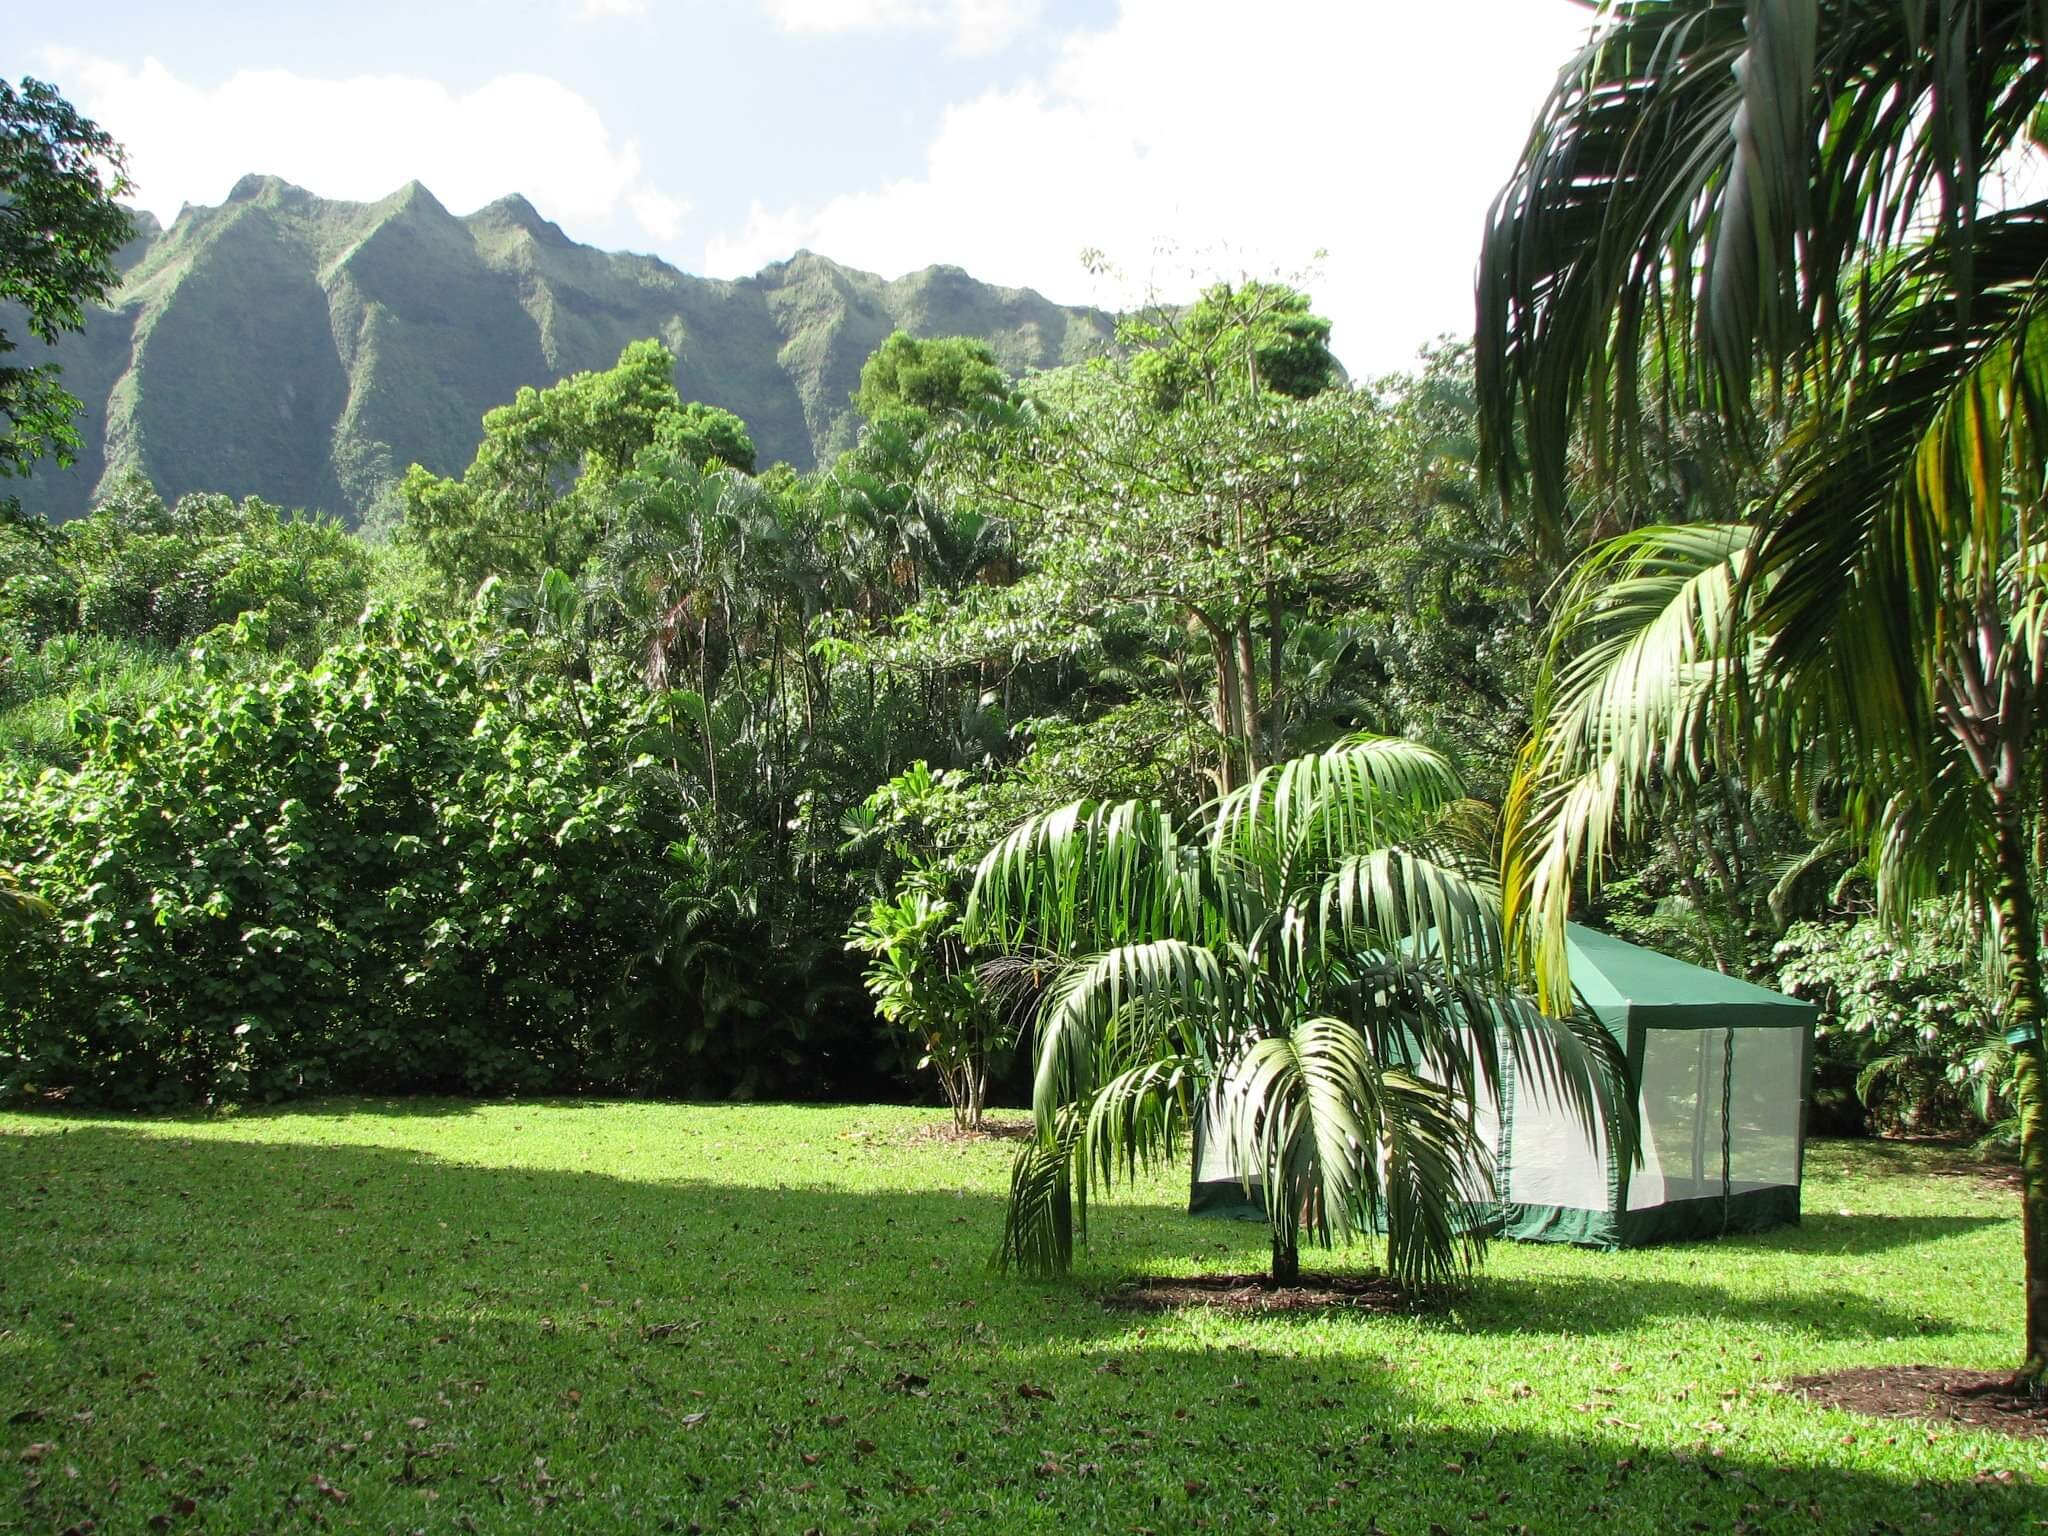 We will be holding class in a botanical garden inside a screened in tent with beautiful views.